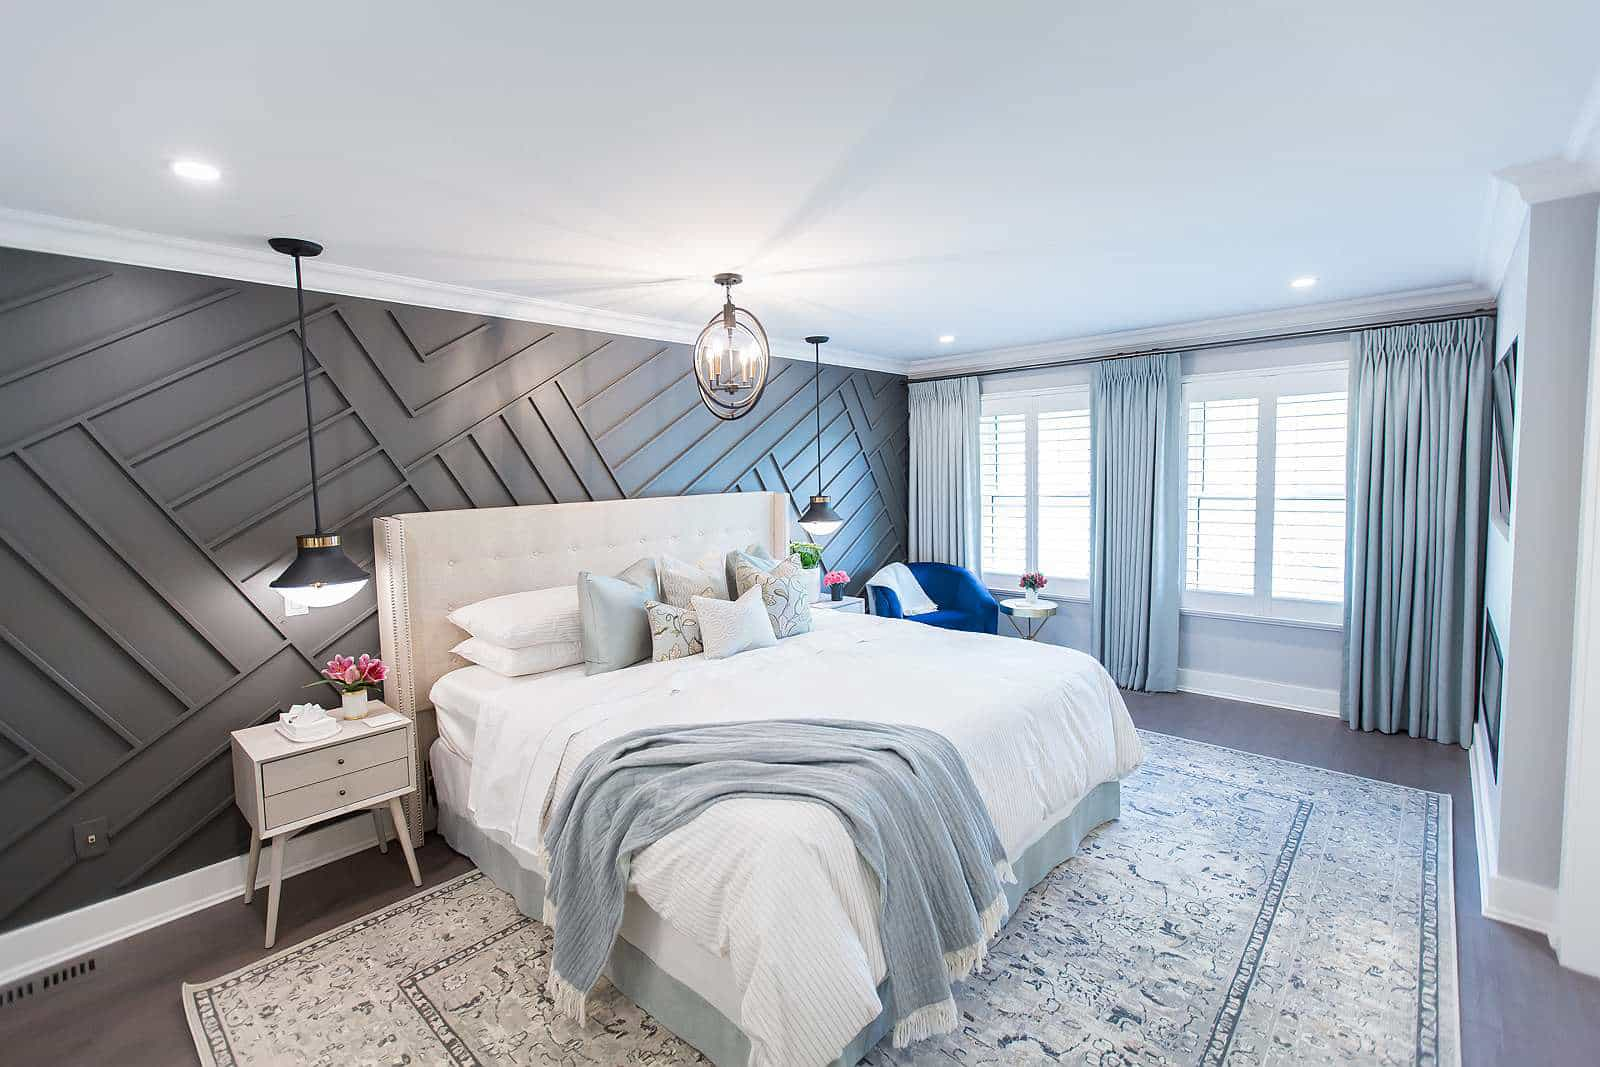 Master bedroom with diagonal wall paneling in Benjamin Moore Flint, Bedside tables with Mateo ceiling-mounted pendant lights and Mateo black and brass orb chandelier, custom drapery panels and cotton viscose rug.